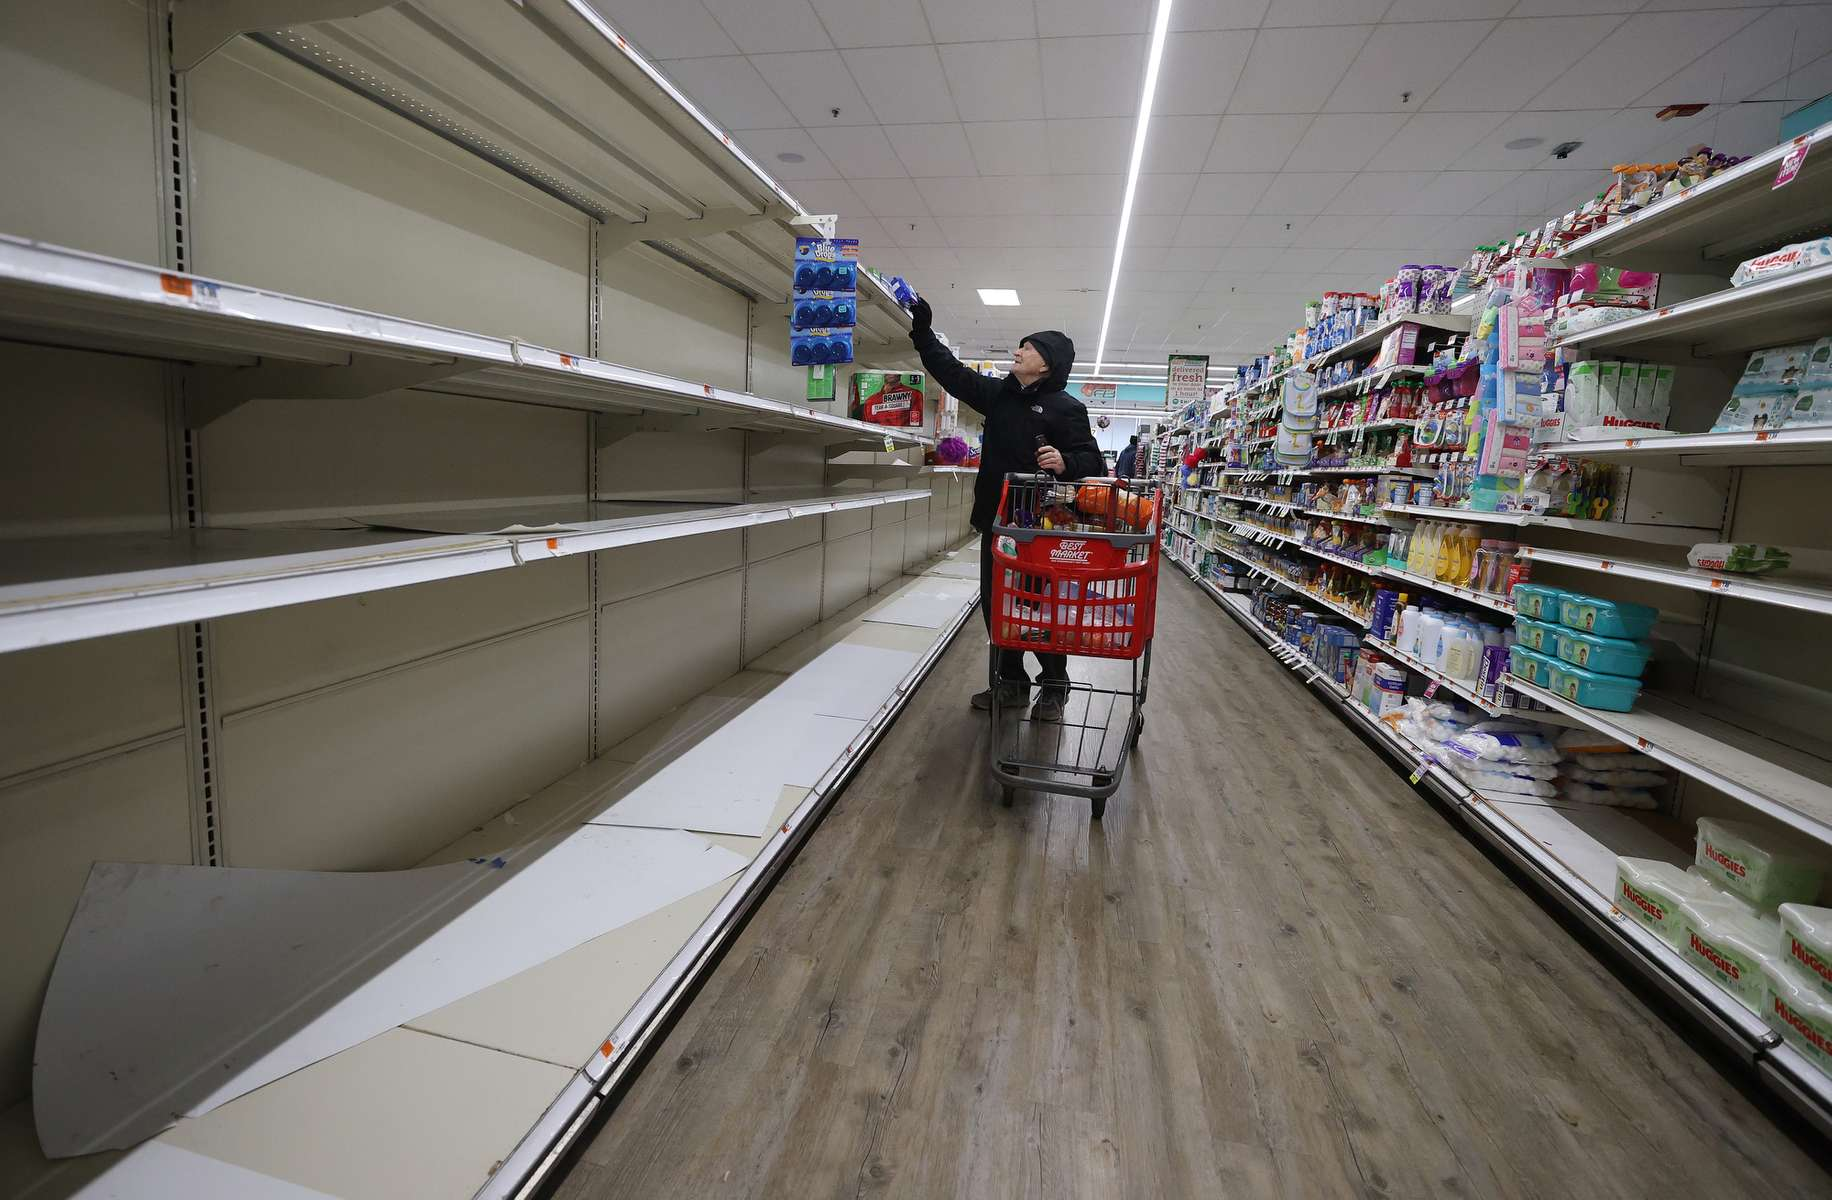 As the coronavirus continues to spread across the United States, stores like Best Market had problems keeping up with the high demand for paper goods leading to empty shelves on March 17, 2020 in Merrick, New York. The World Health Organization declared coronavirus (COVID-19) a global pandemic on March 11th.